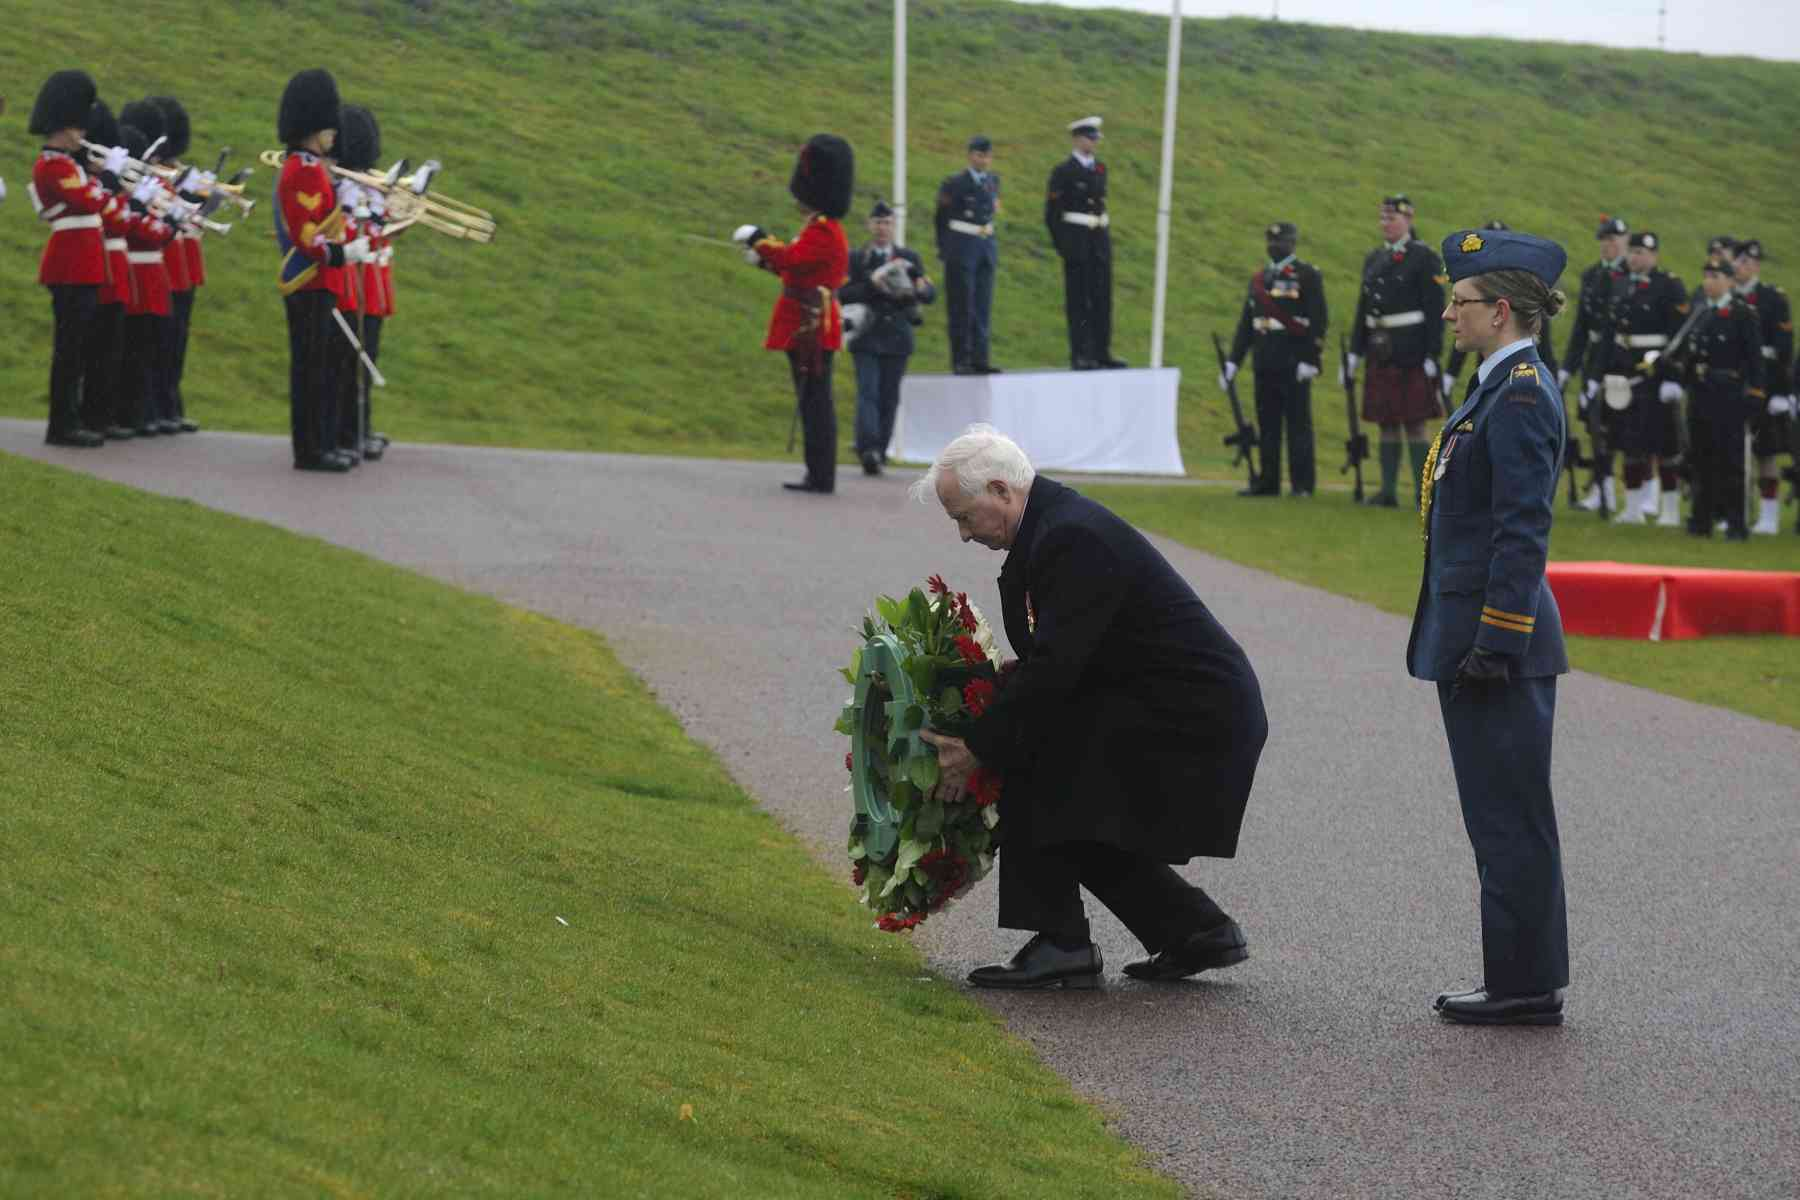 The Governor General also laid a wreath of flowers at the Canadian National Vimy Memorial.